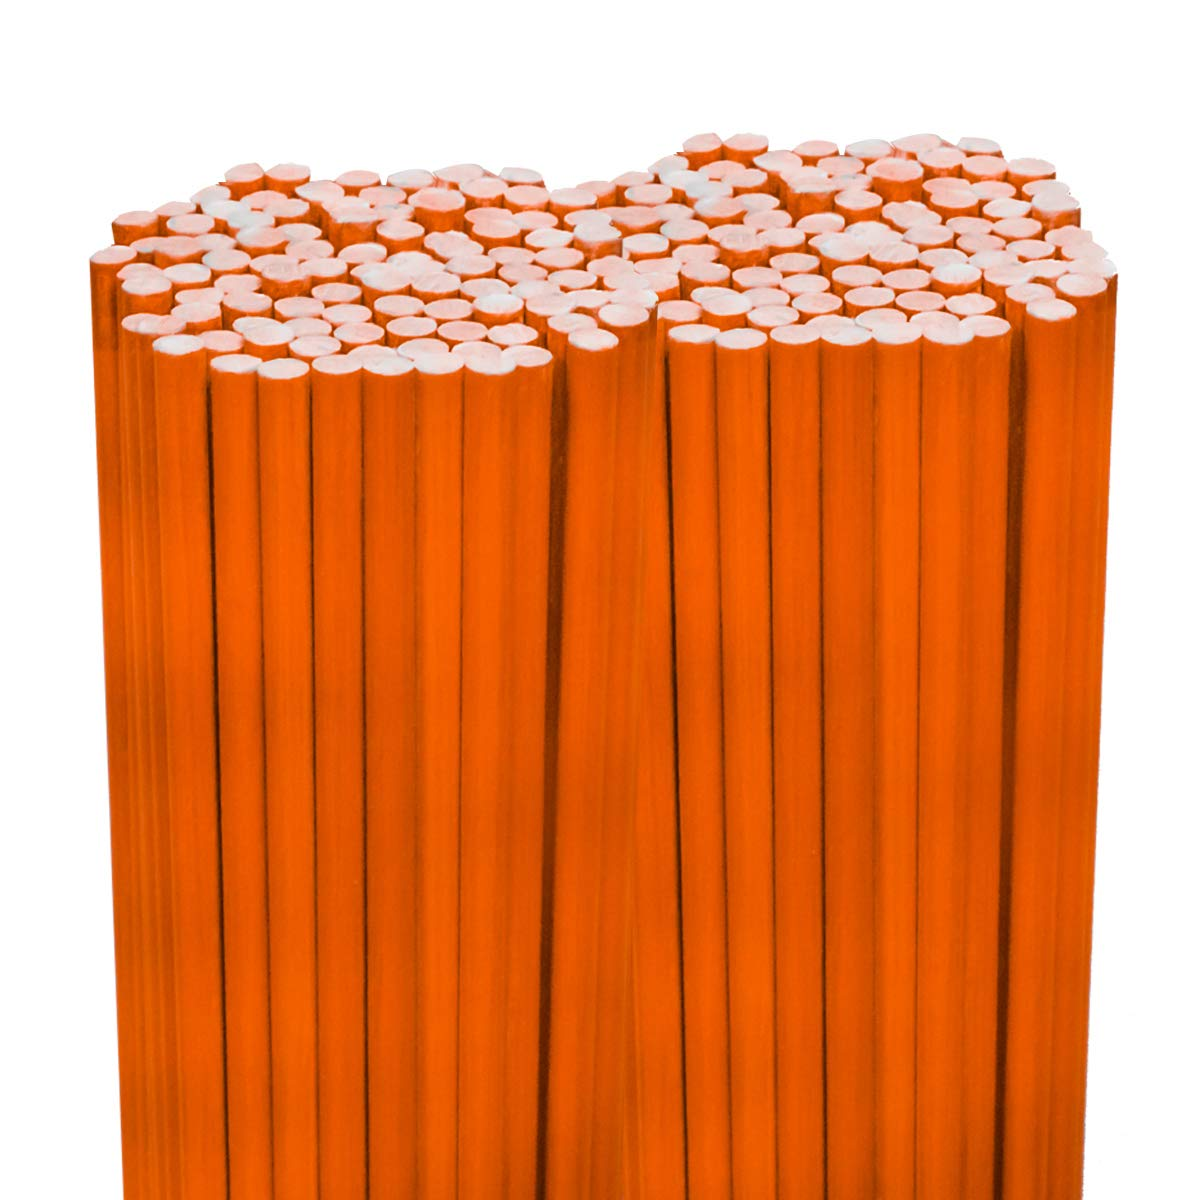 200PK 48 1/4 Diameter Hi Visibility Safety Orange Driveway Markers- Rods Stakes Guides Replaces Stake Guides